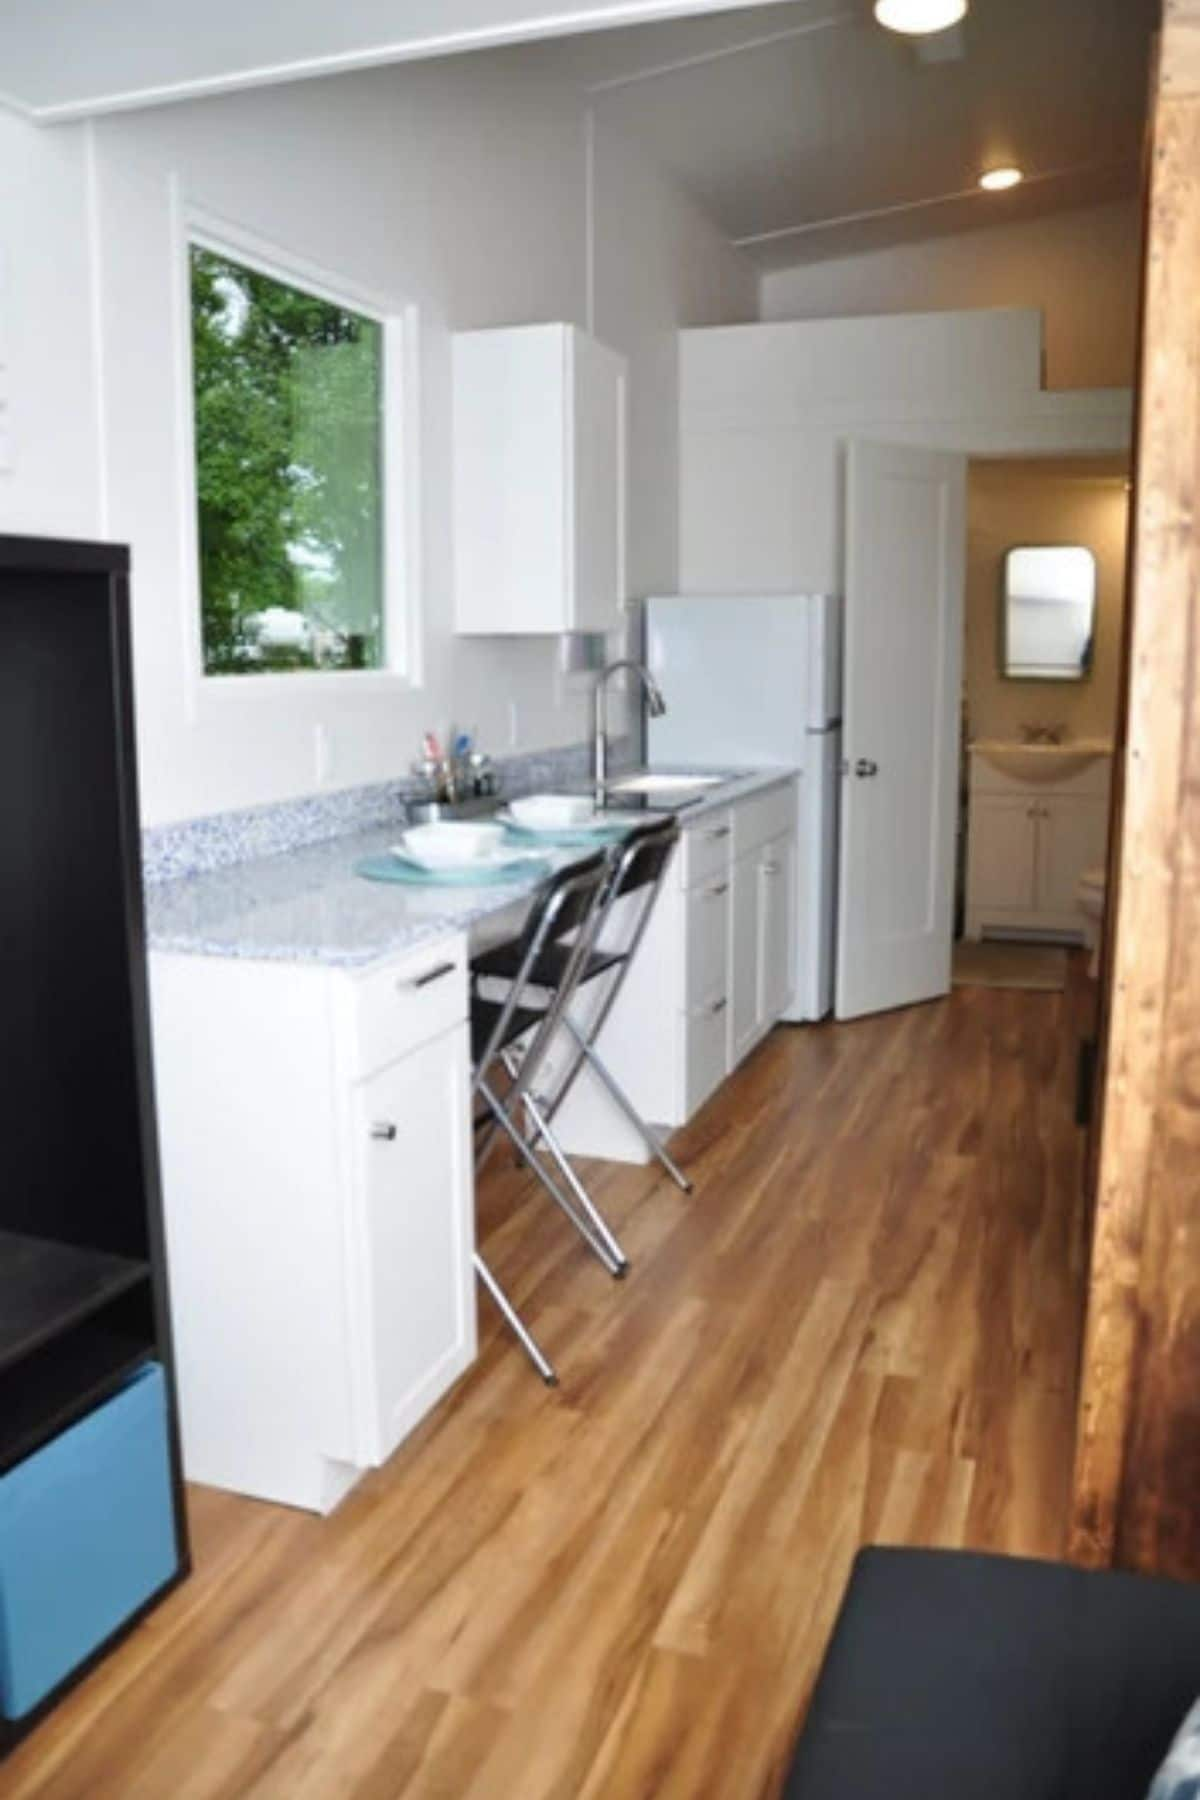 Looking into kitchen with chairs tucked under long counter